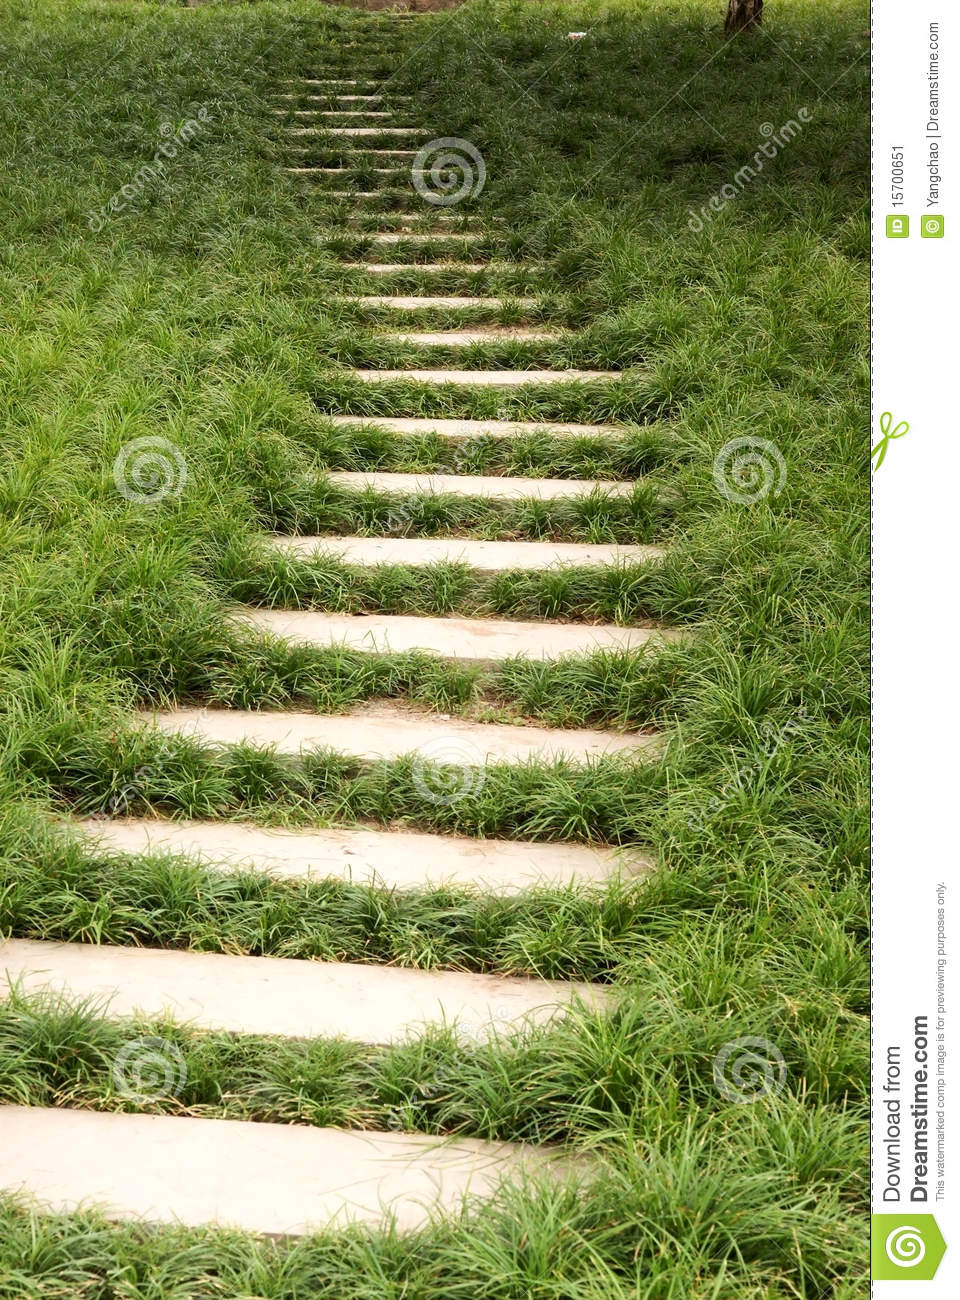 Grass Lawn With Steps Stock Image Image Of Footstep